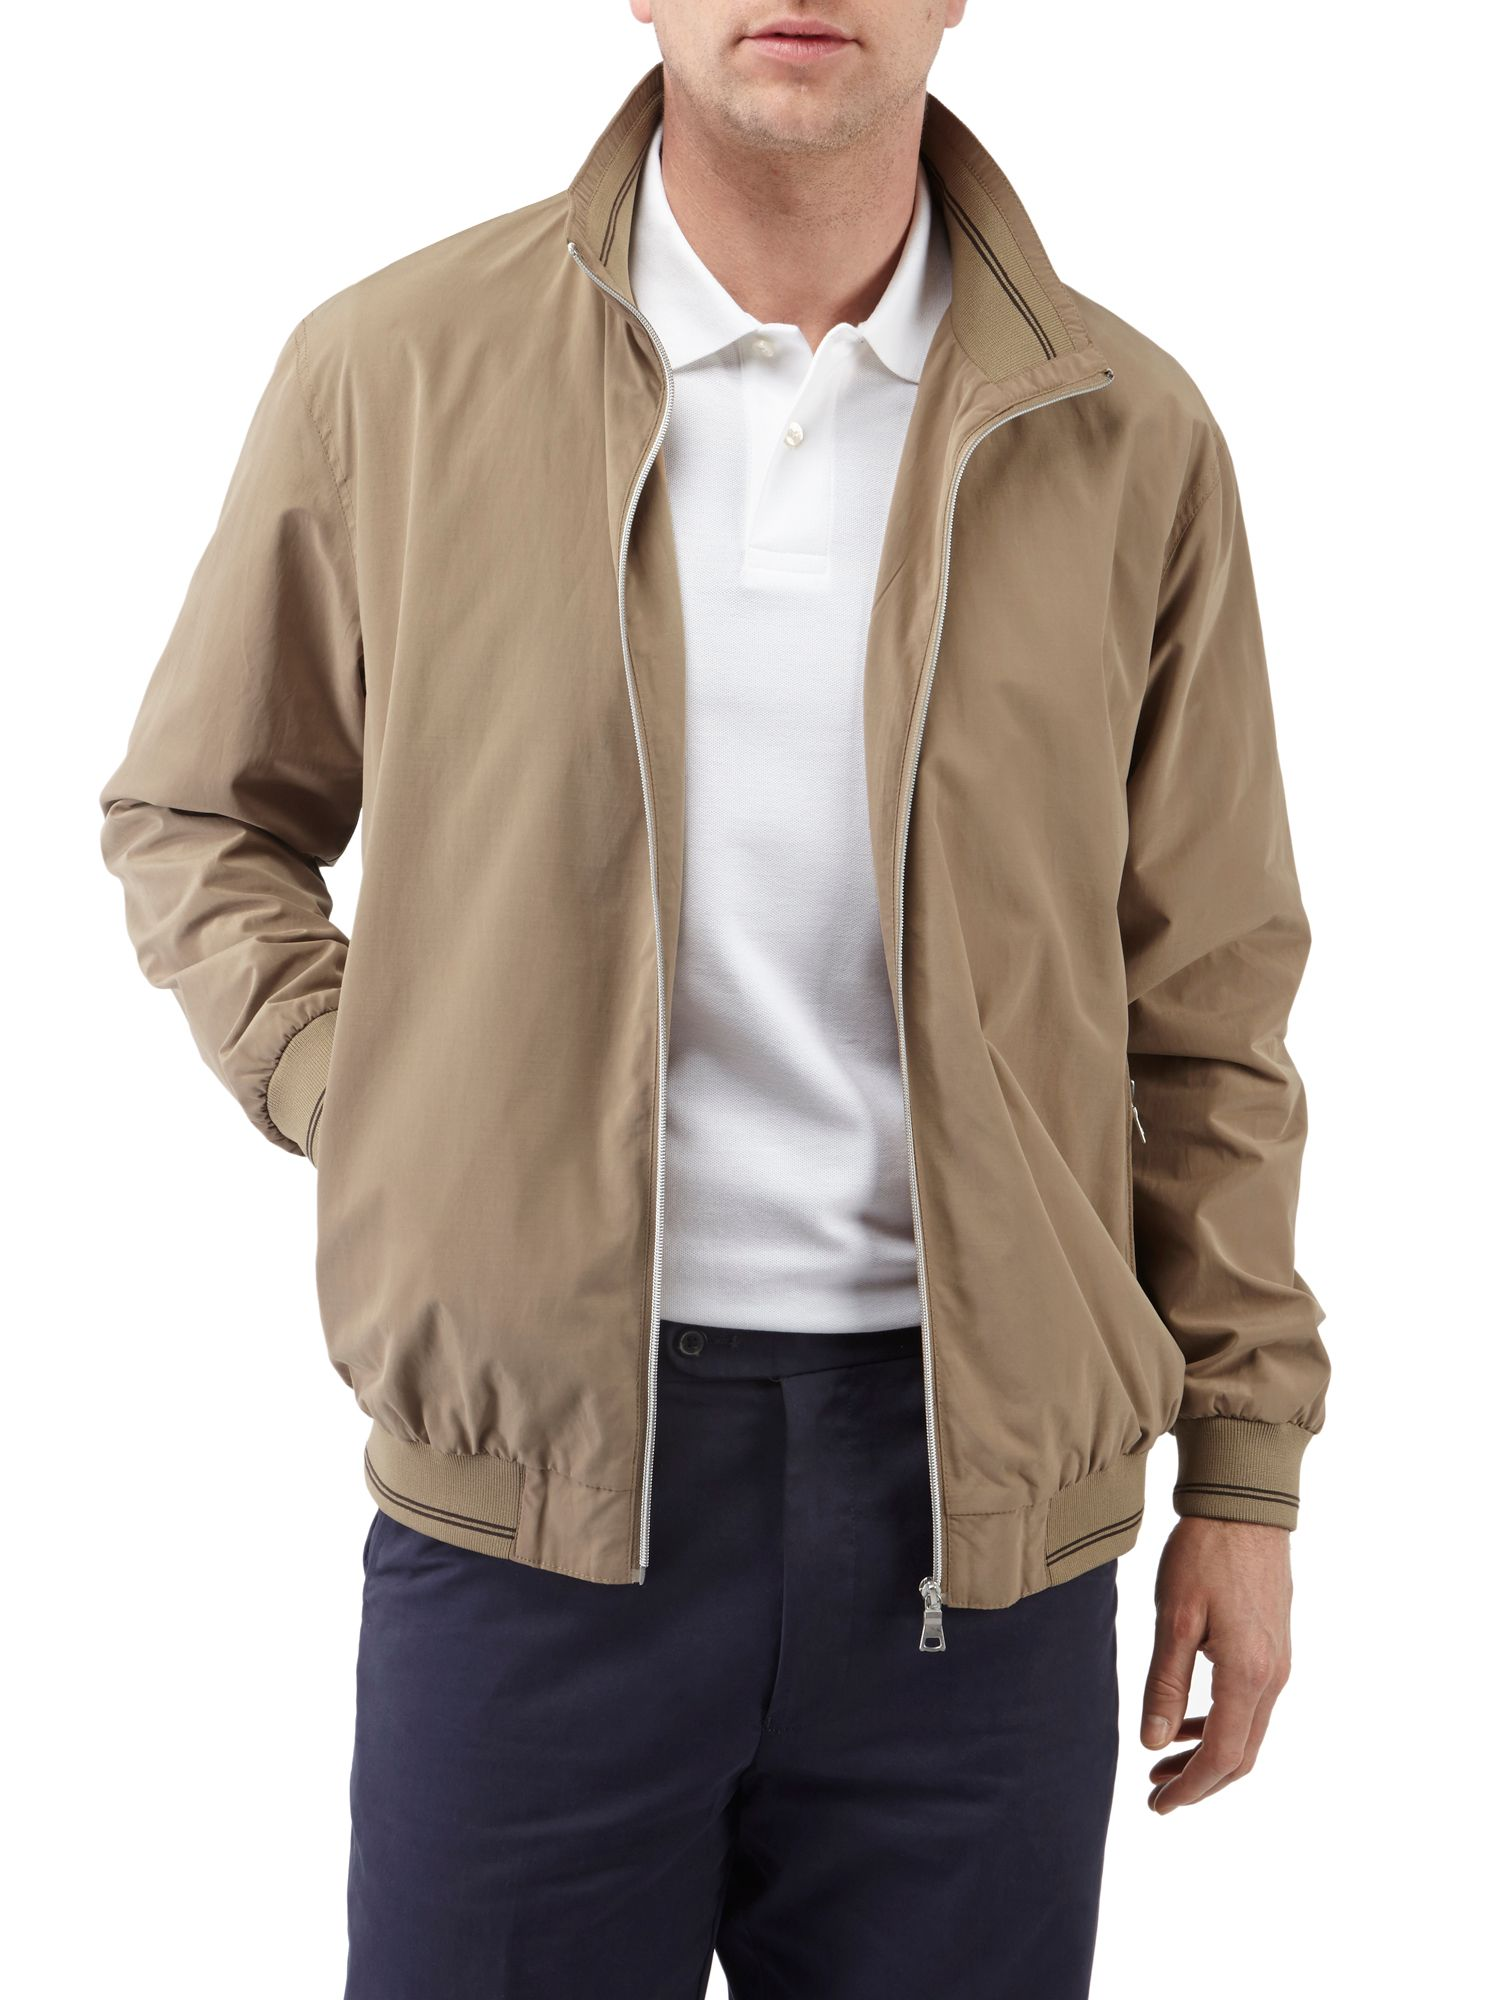 Beziers casual showerproof full zip bomber jacket